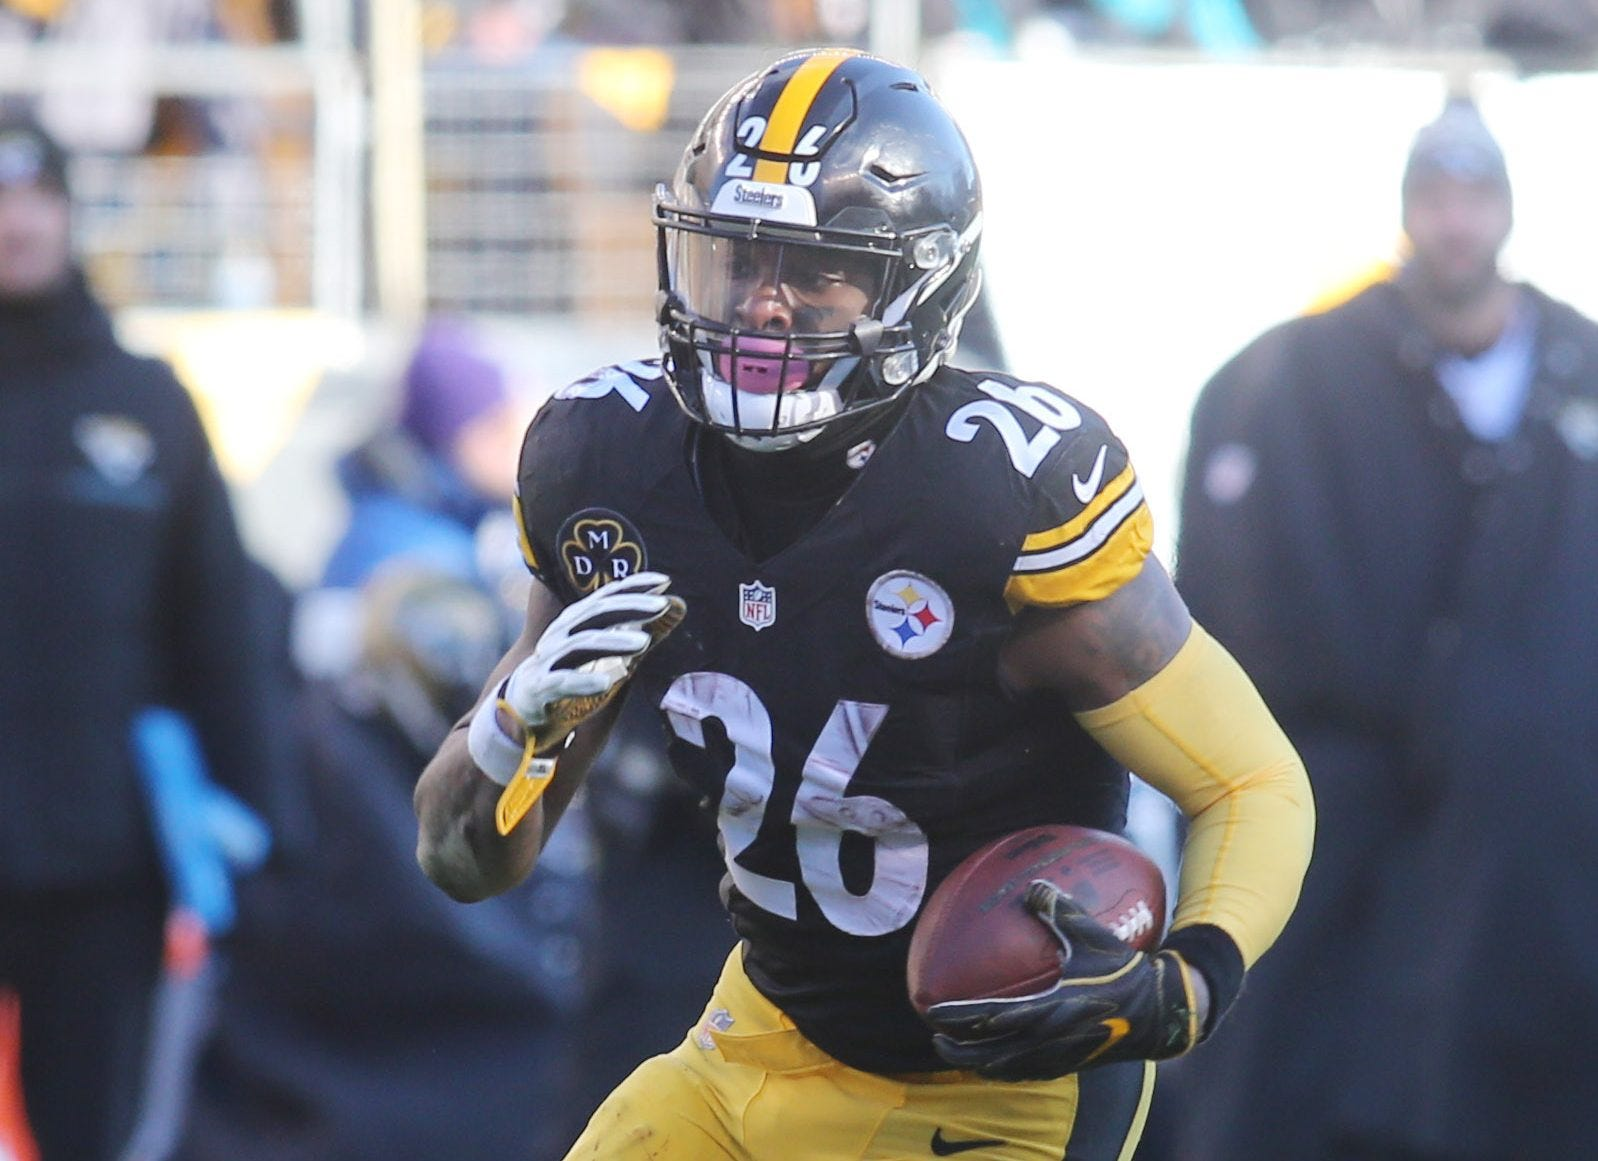 ff3da92d4 Le'Veon Bell: Jets payout doesn't measure up after RB's Steelers ploy